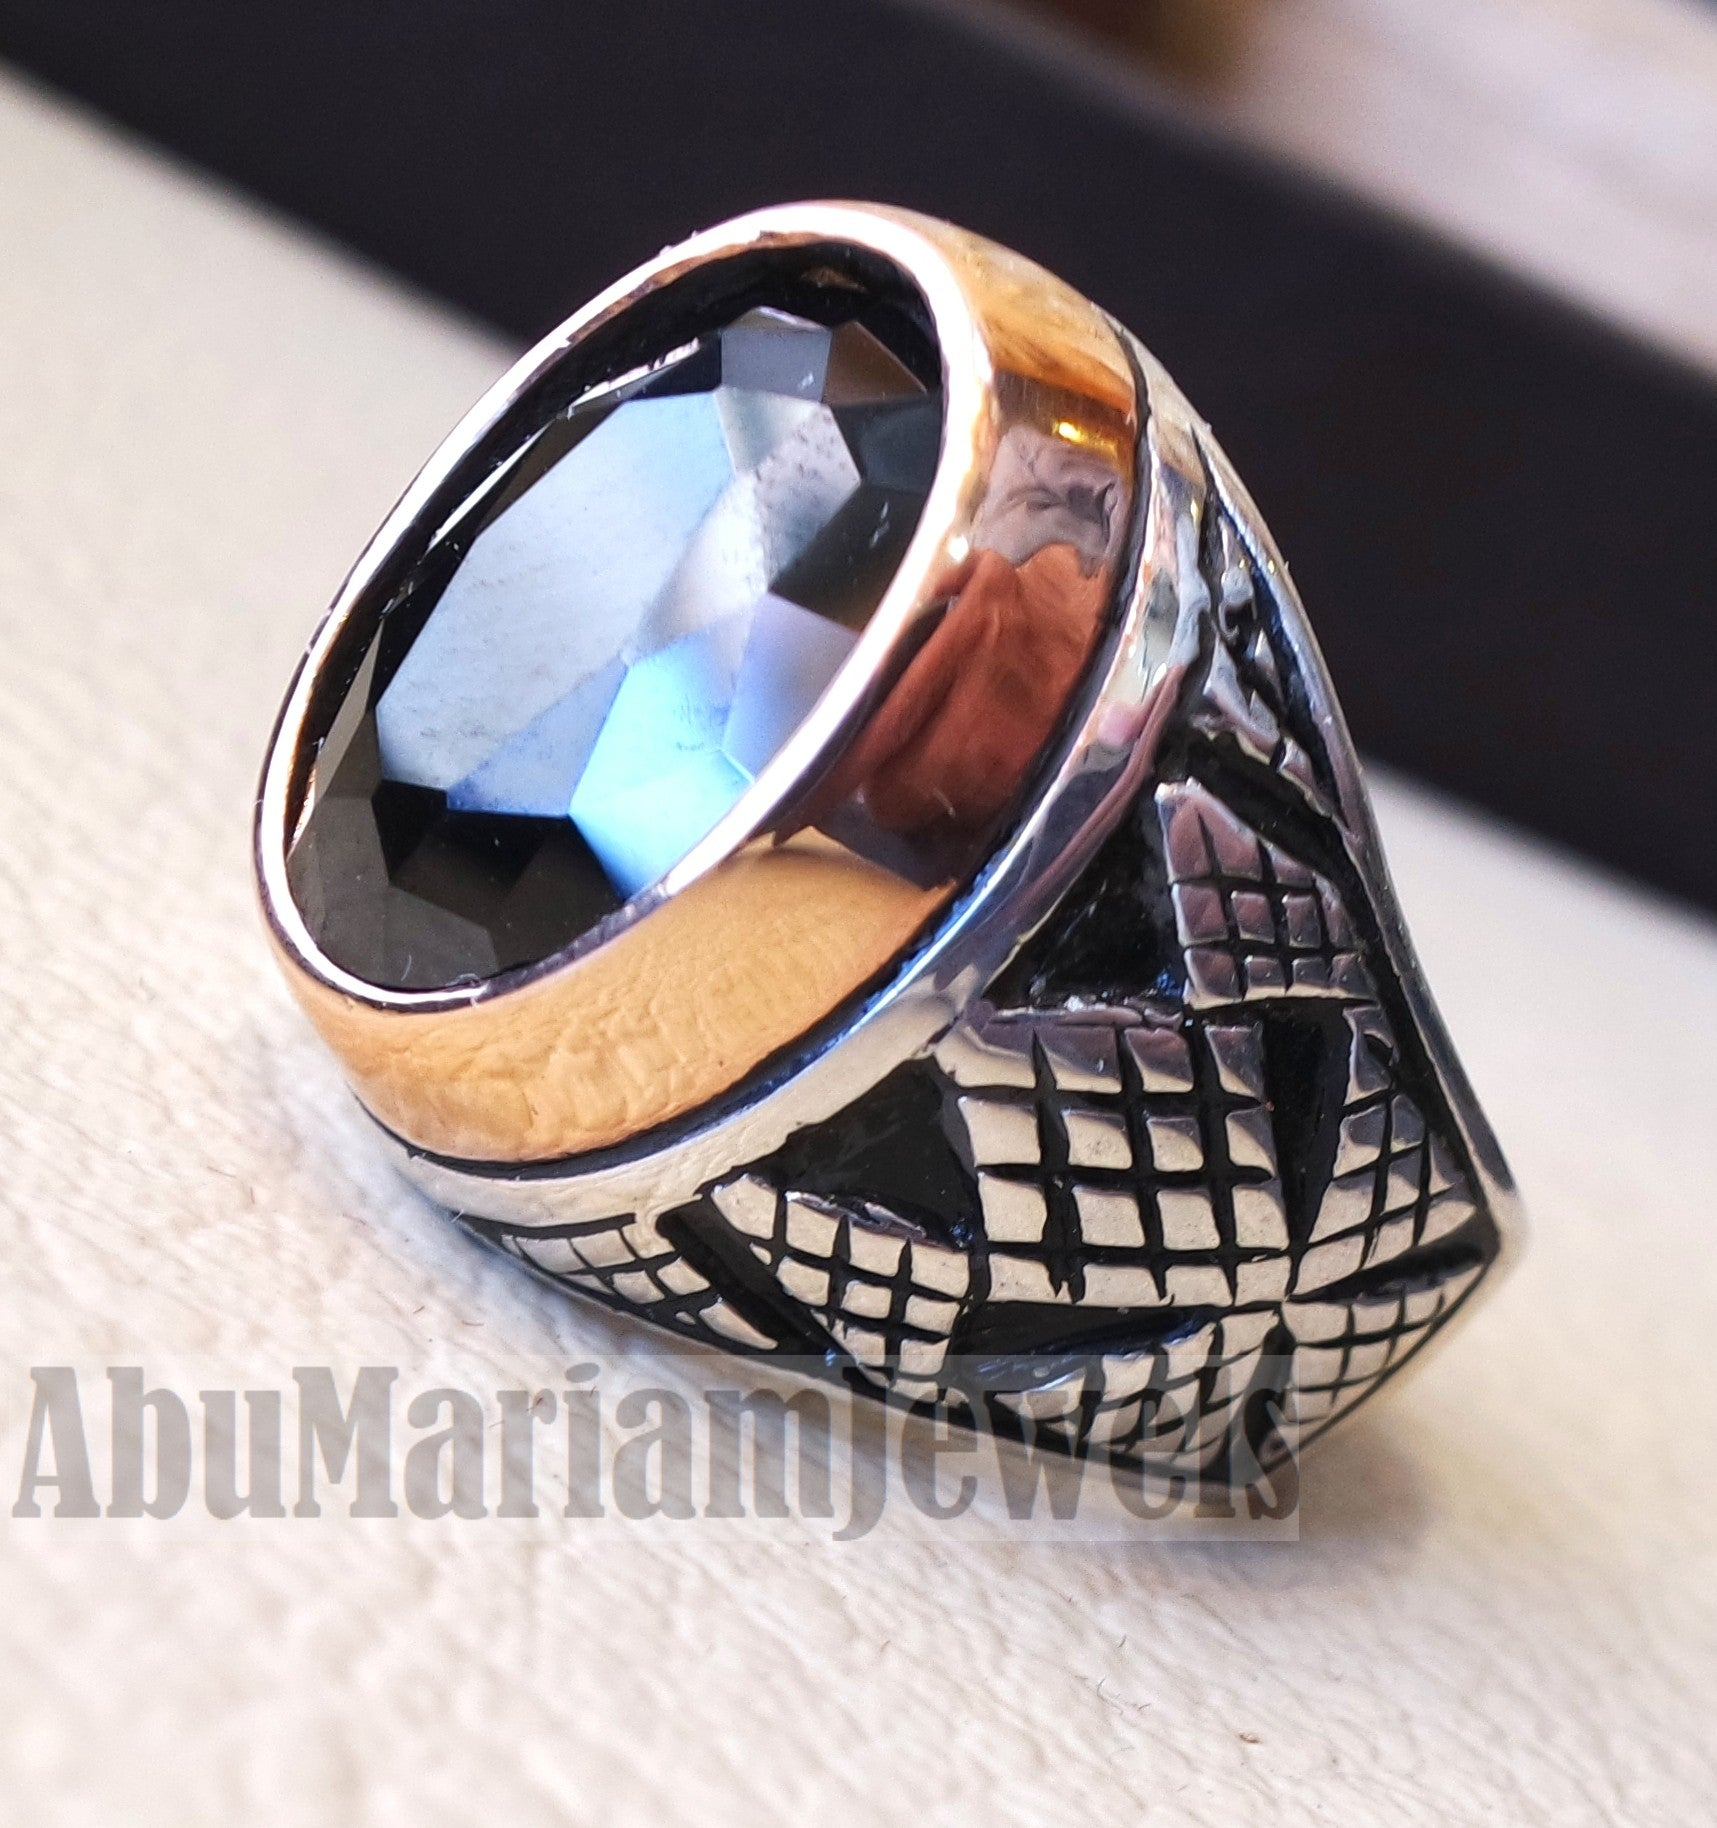 man ring sterling silver 925 and bronze oval black cubic zircon Cz identical to genuine diamond fast shipping all sizes ottoman style